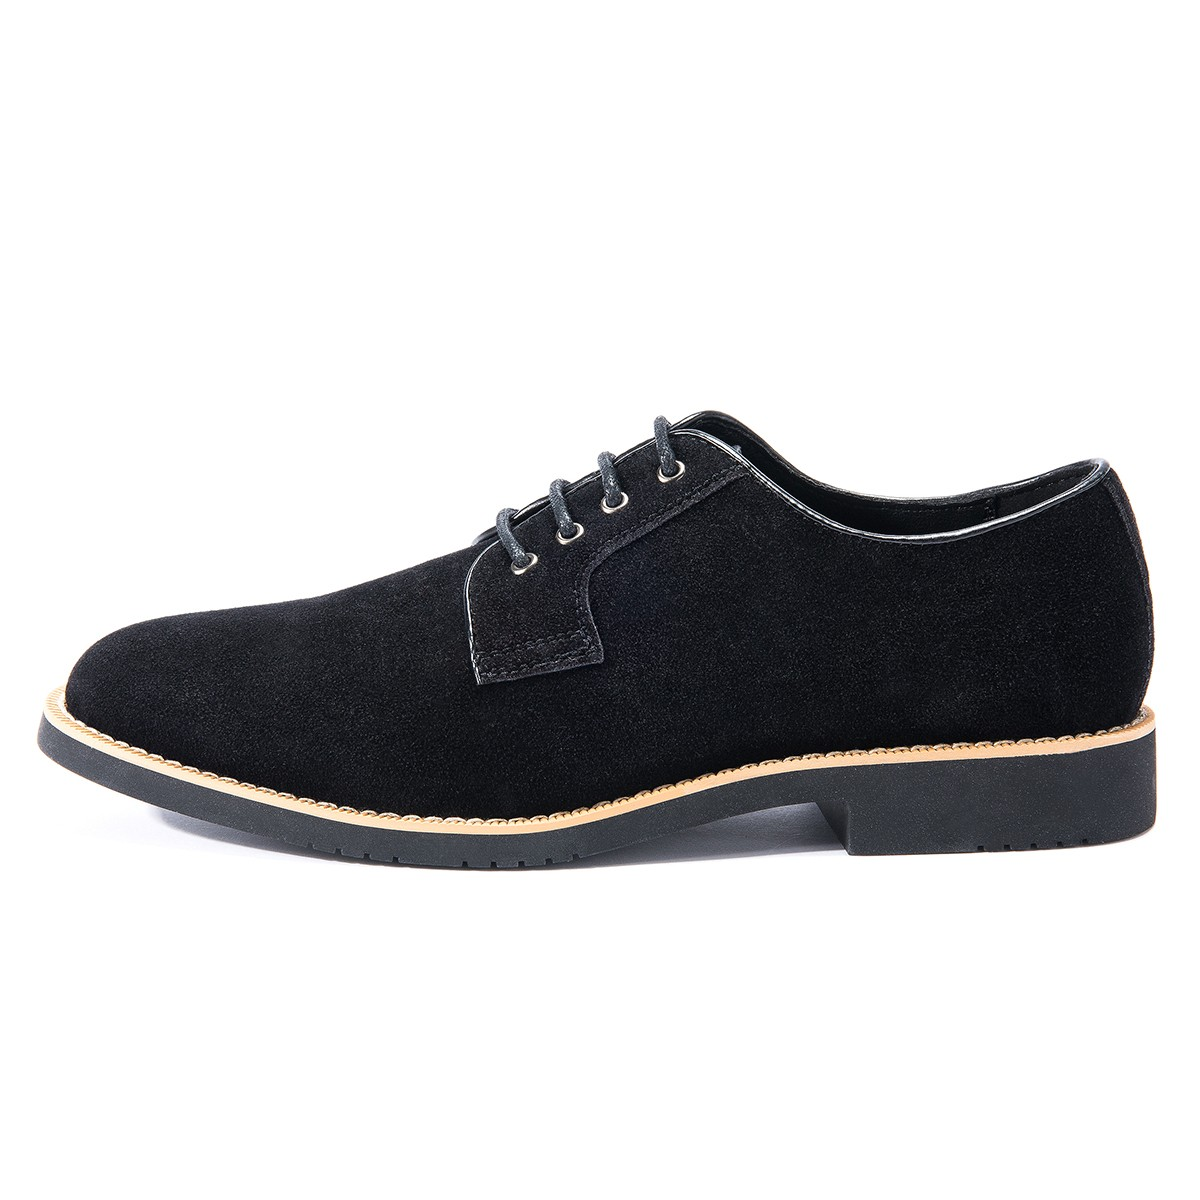 GM Golaiman GM14 Men Casual Leather Shoes - Black US 12